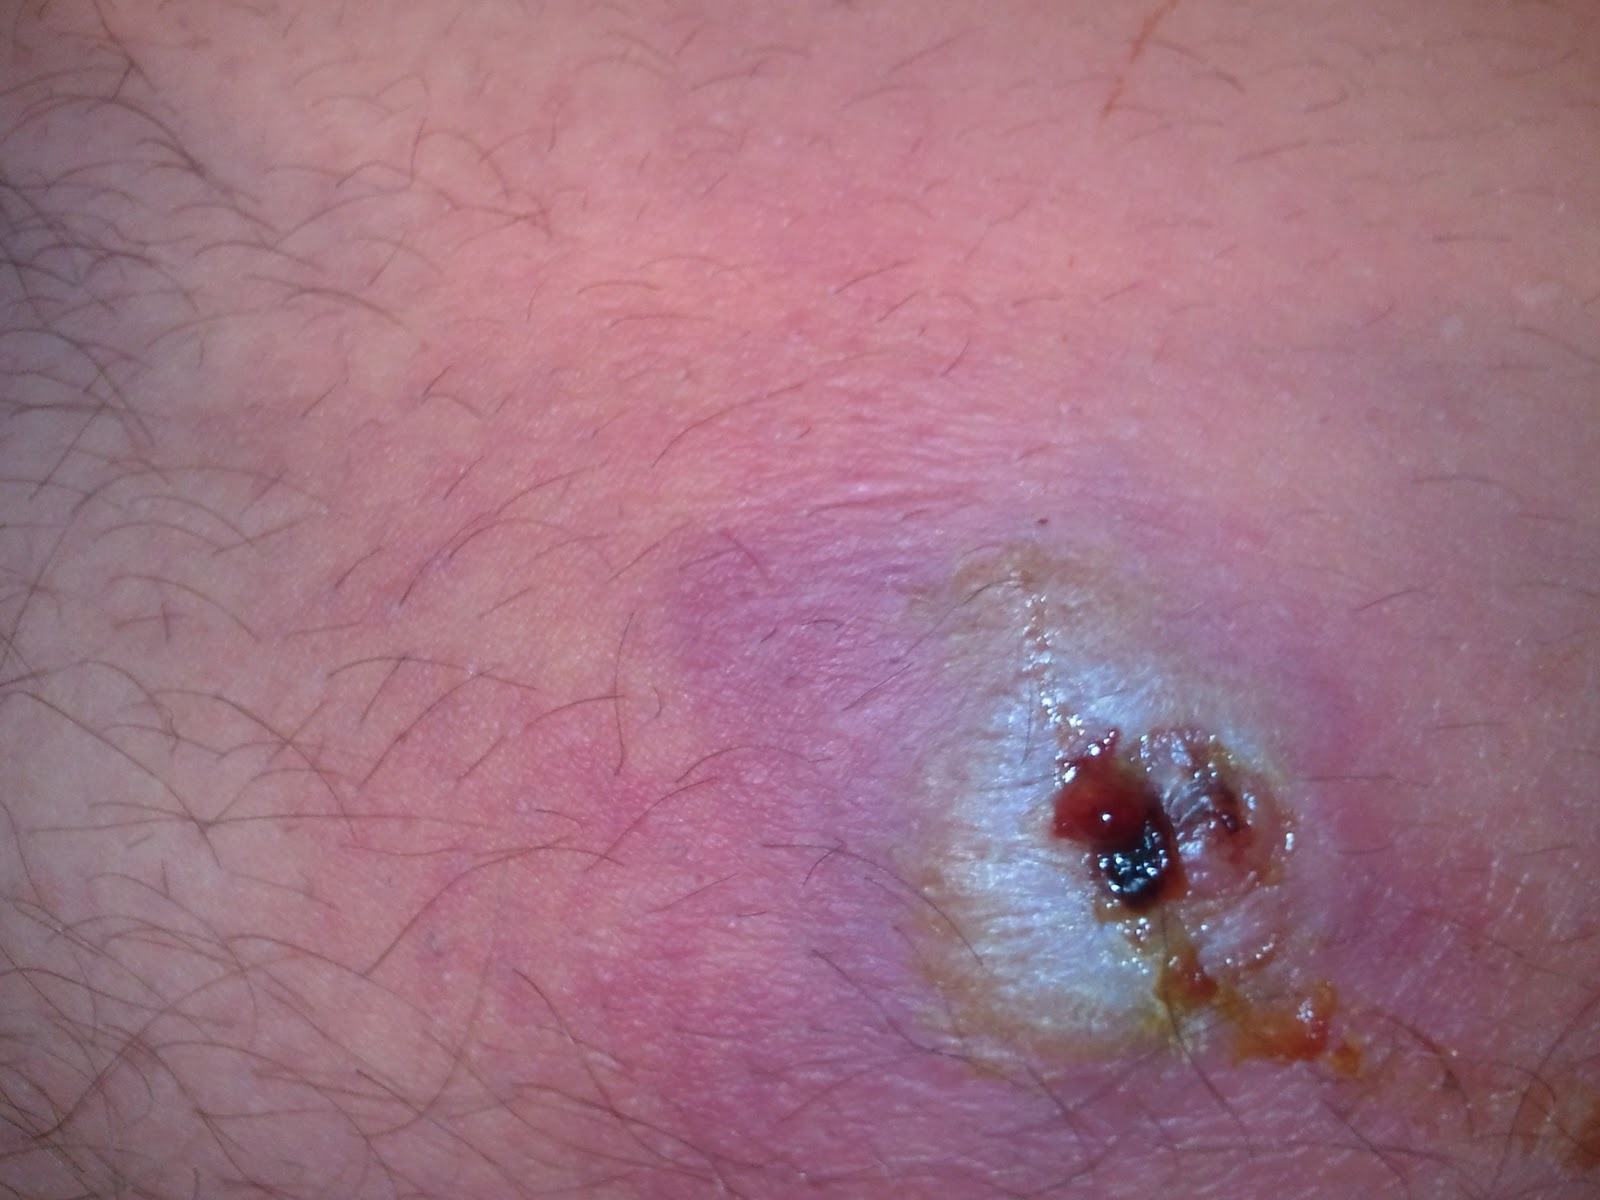 brown recluse bite images day 1